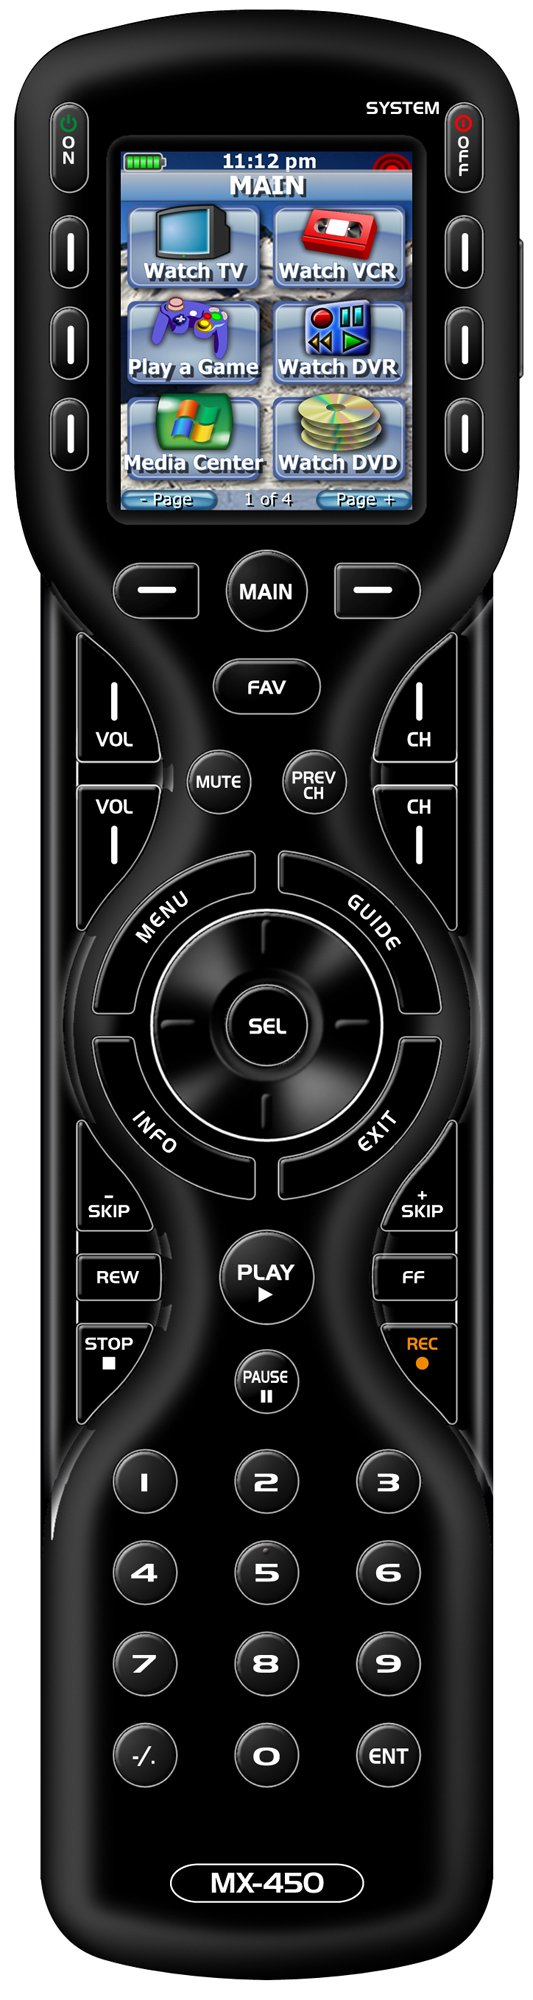 Universal Remote Control MX-450 Custom Programmable Remote Control with On-Screen Macro Editing. by Universal